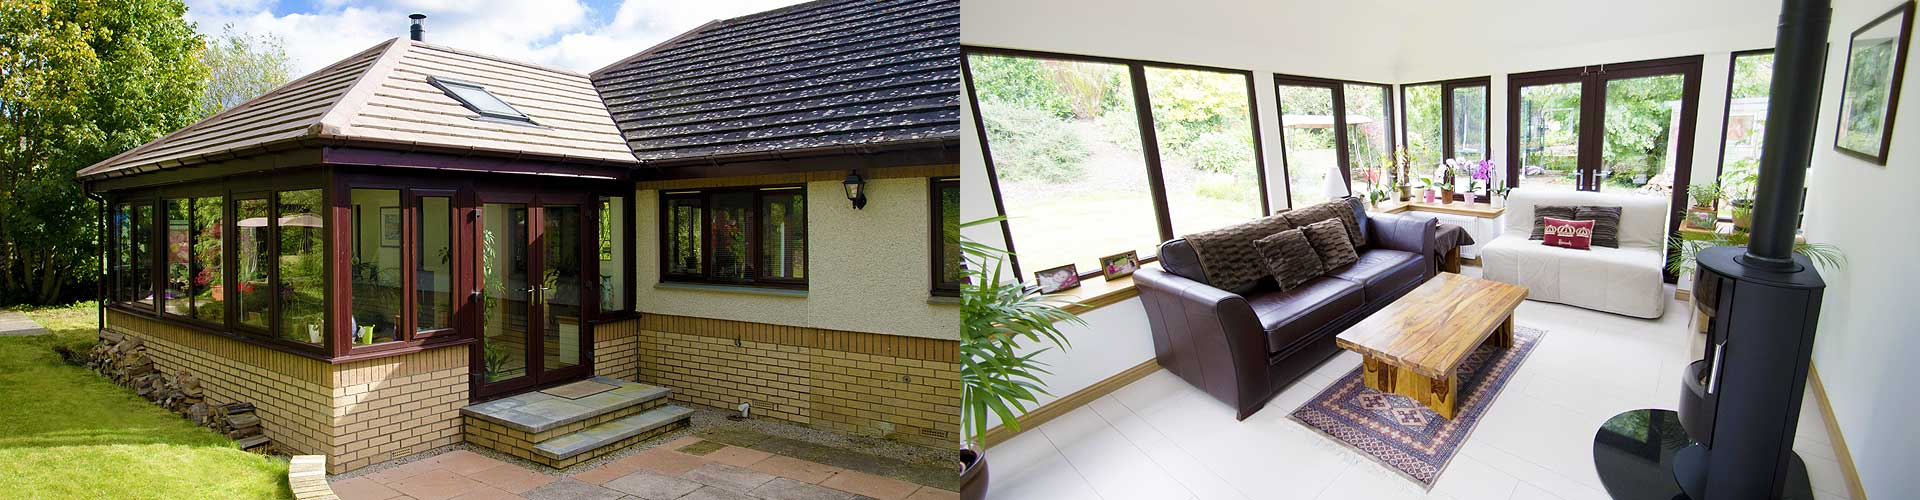 Thistle Home Extensions Aberdeen, Aberdeenshire & North East Scotland